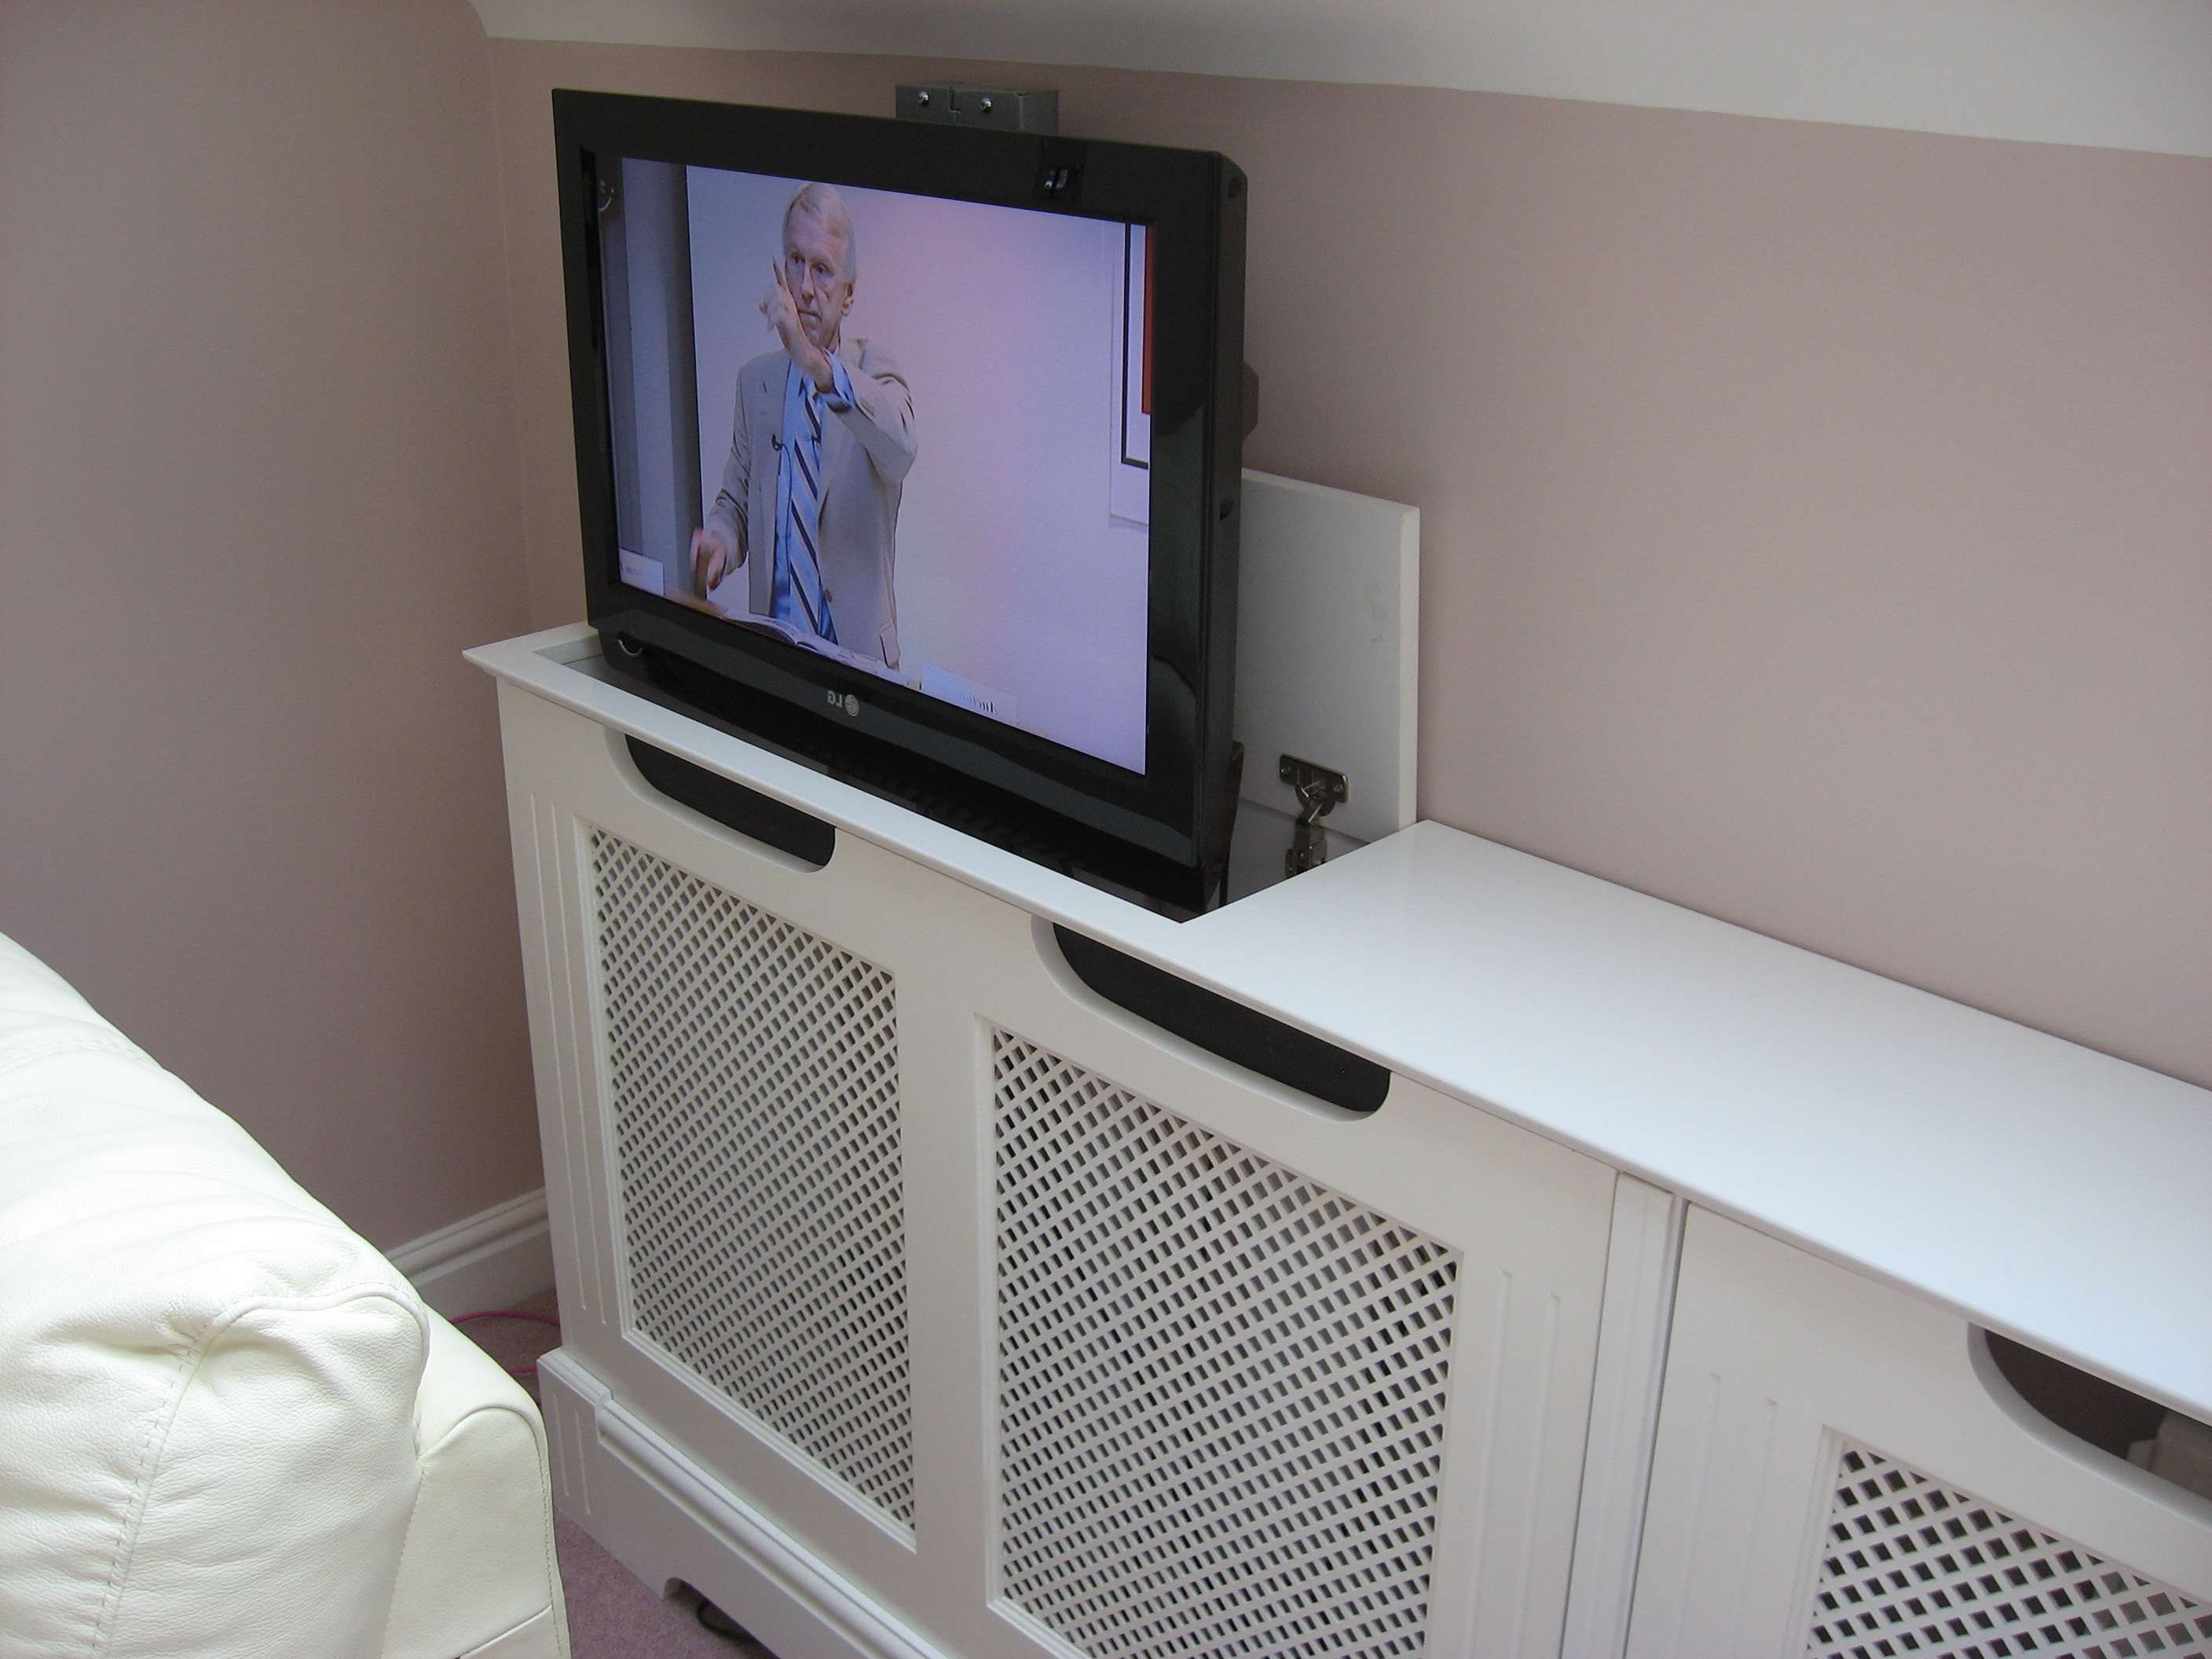 Pop Up Tv Cabinet Flat Screen From Baker Thomas Pheasant Regarding Pop Up Tv Stands (View 14 of 20)